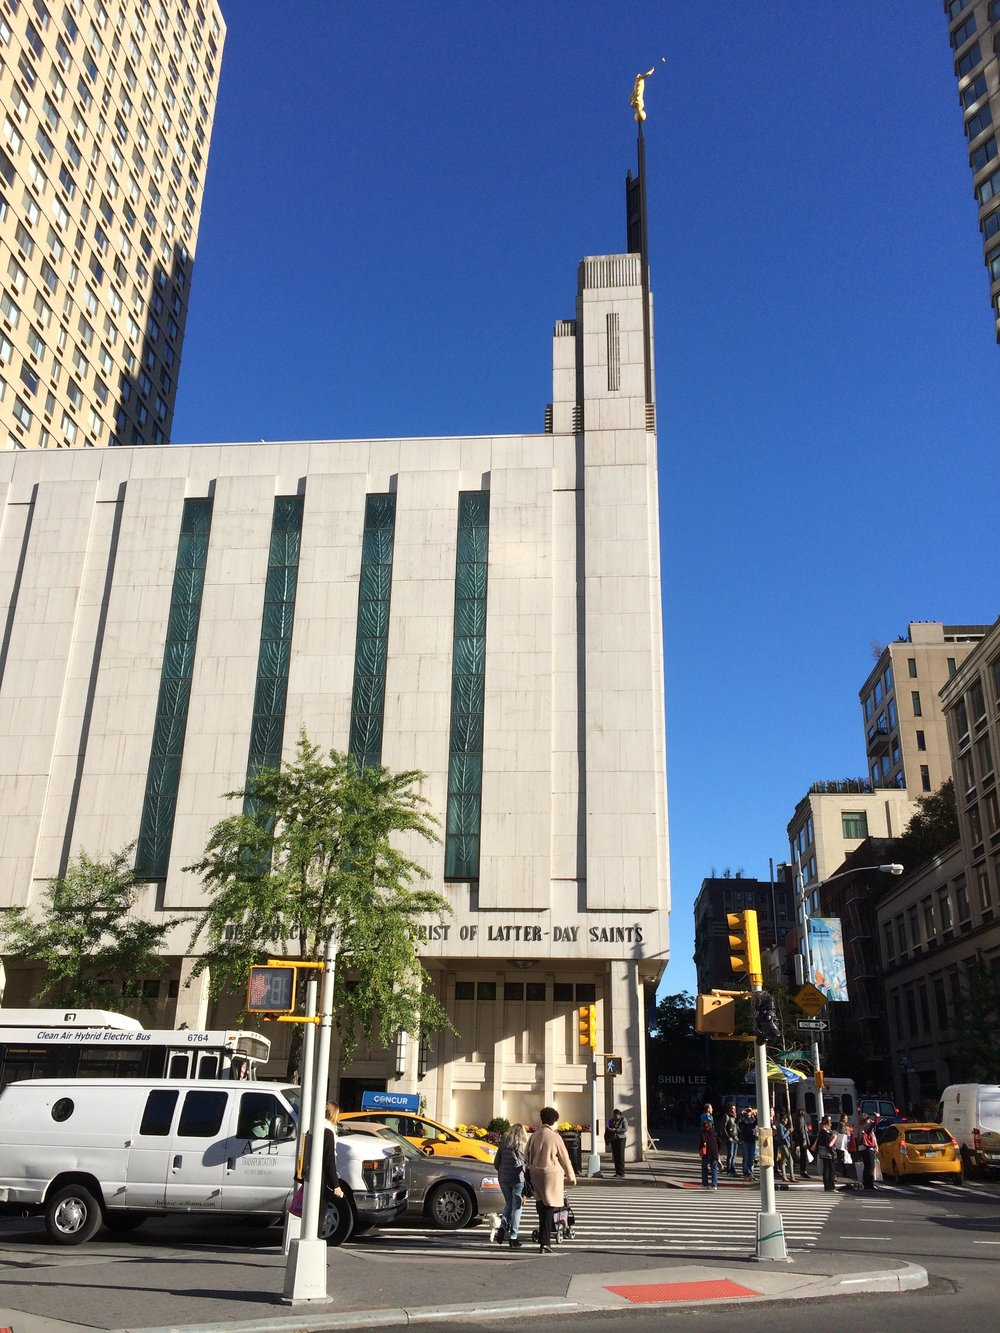 21. Manhattan LDS Temple